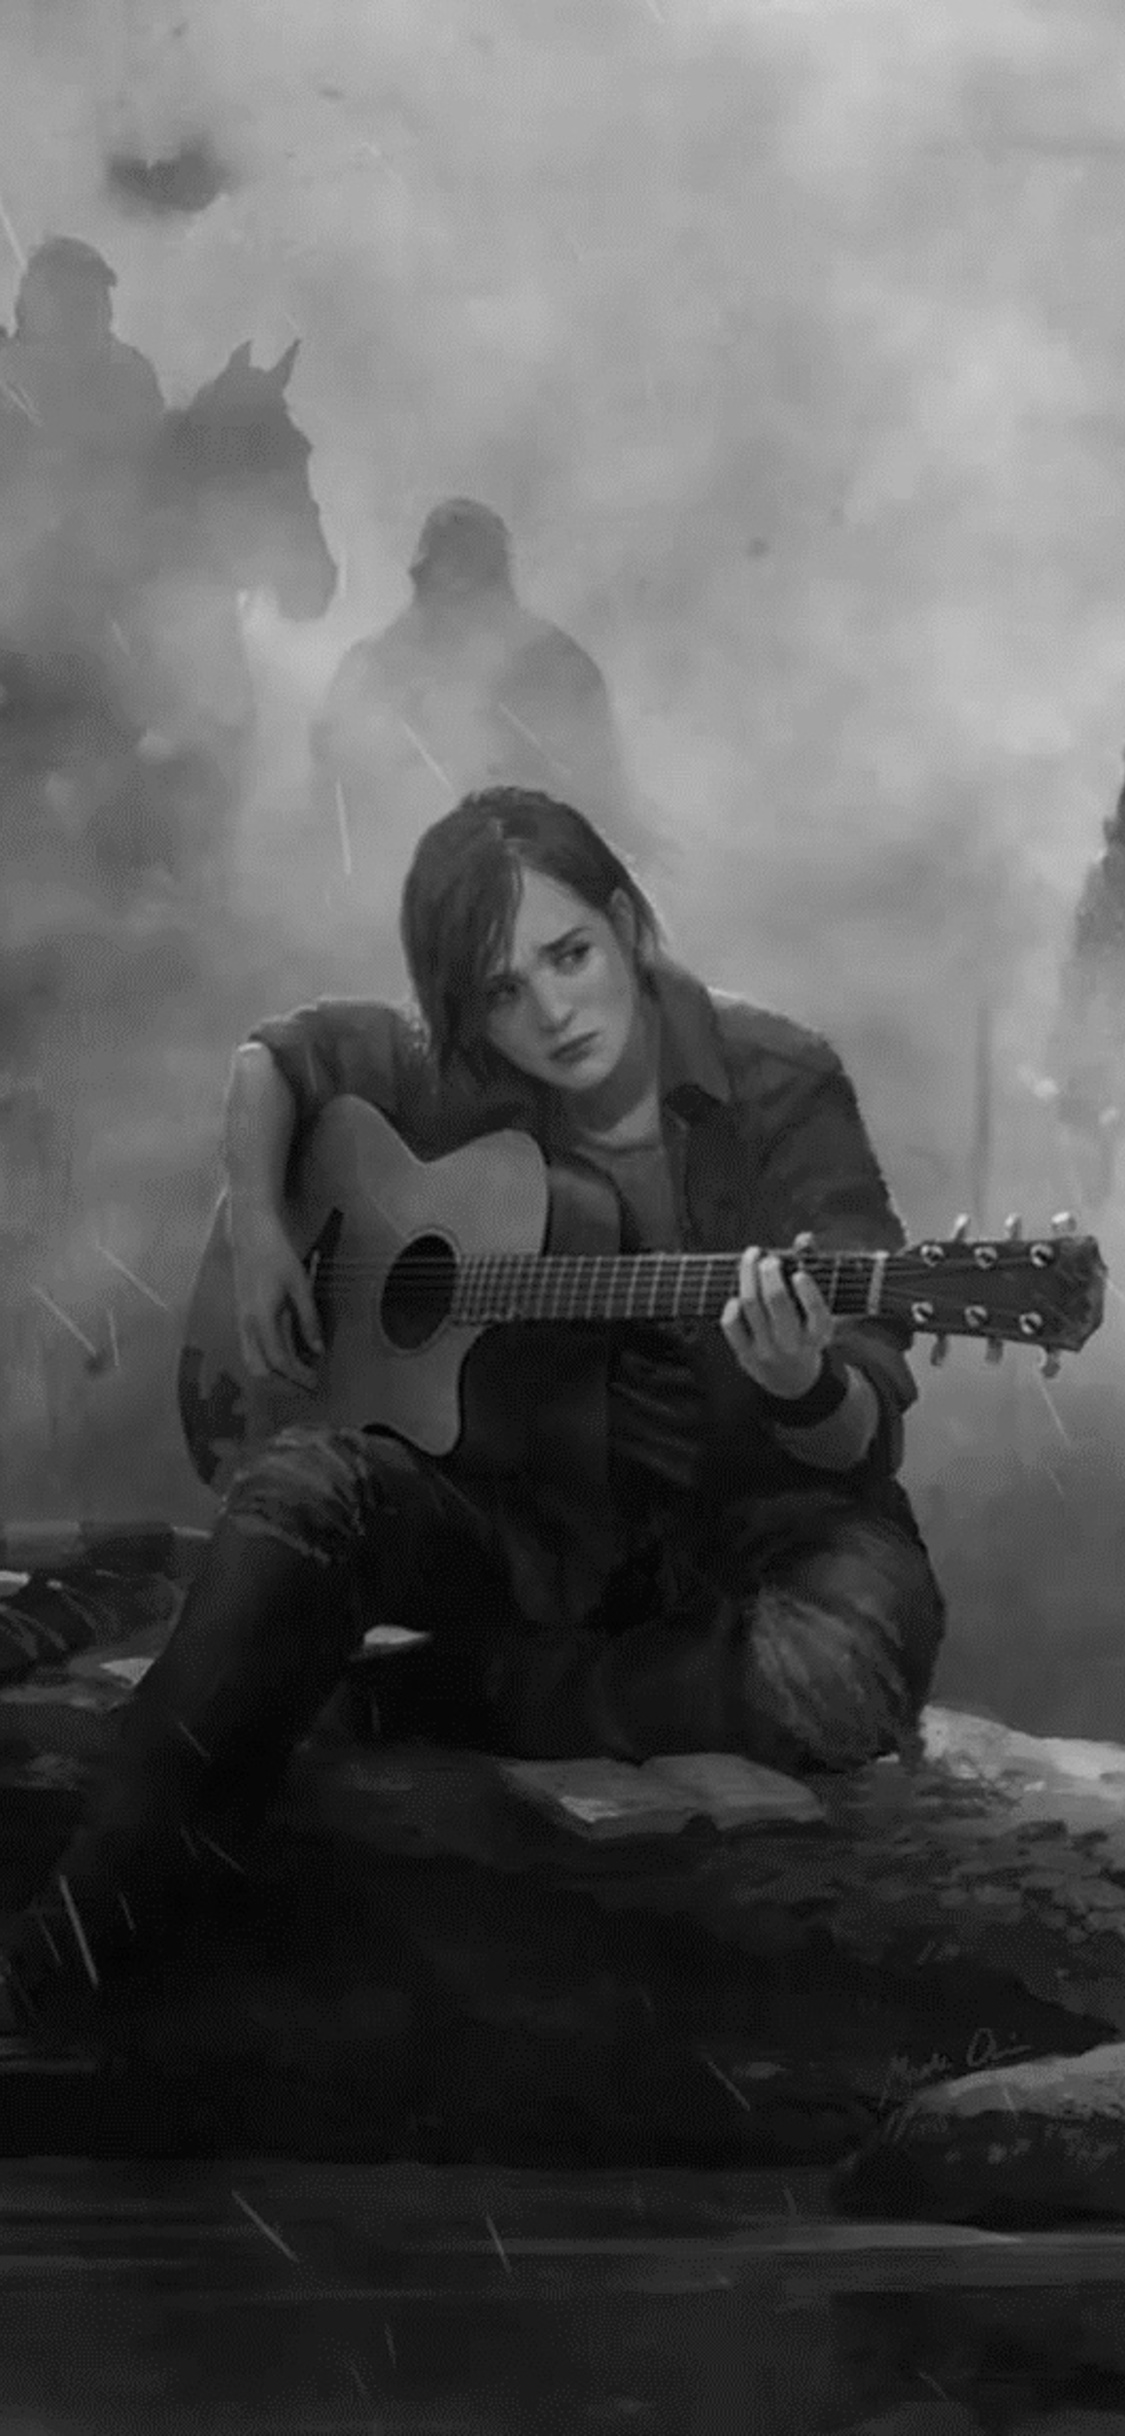 1125x2436 Ellie The Last Of Us Part 2 Guitar Monochrome Iphone Xs Iphone 10 Iphone X Hd 4k Wallpapers Images Backgrounds Photos And Pictures